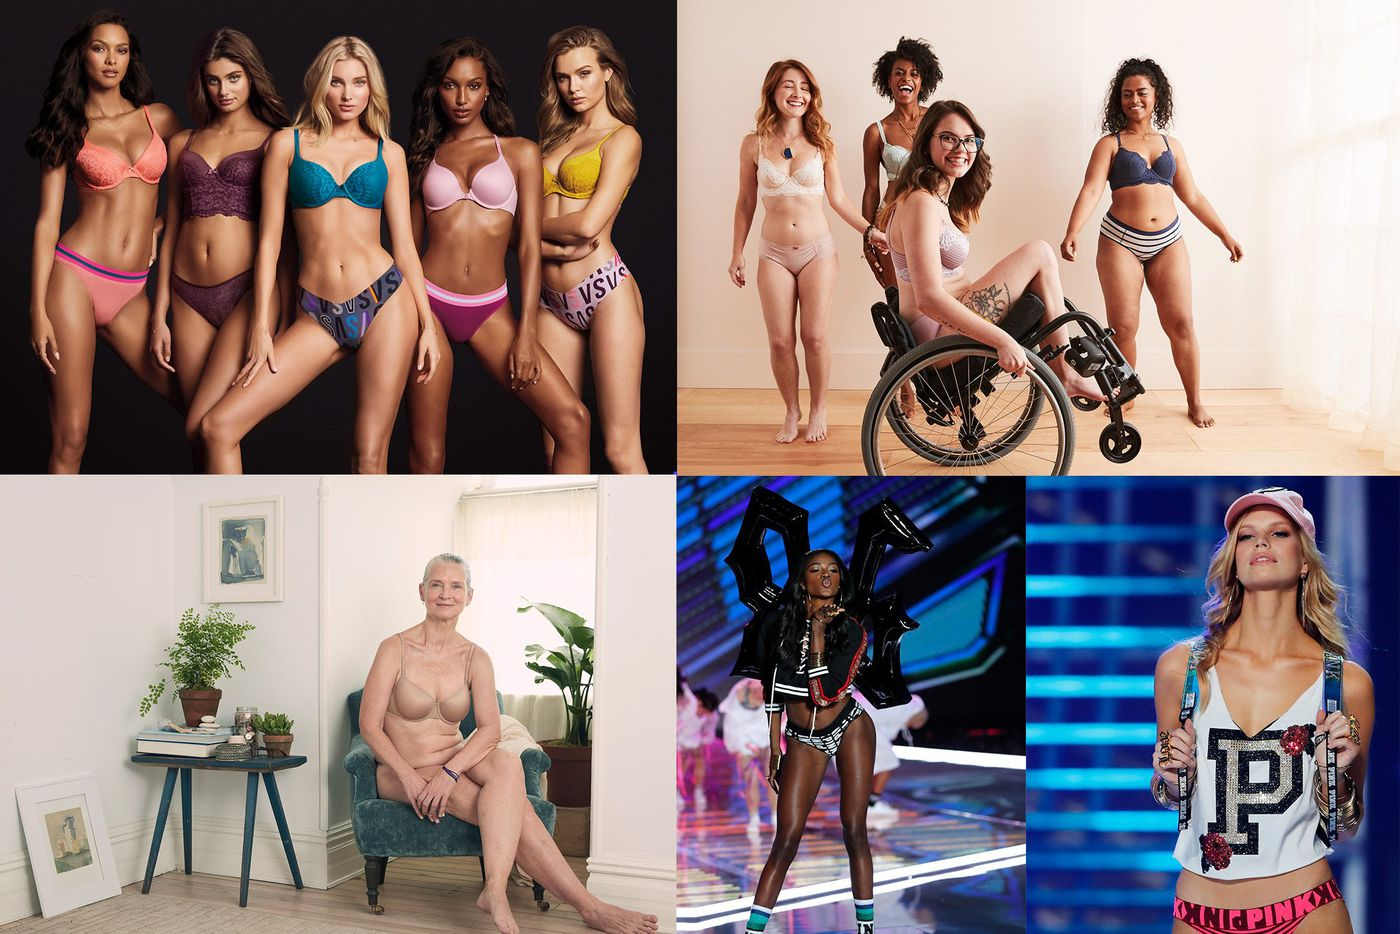 Lingerie leader Victoria's Secret has new competition: Brands embracing body positivity